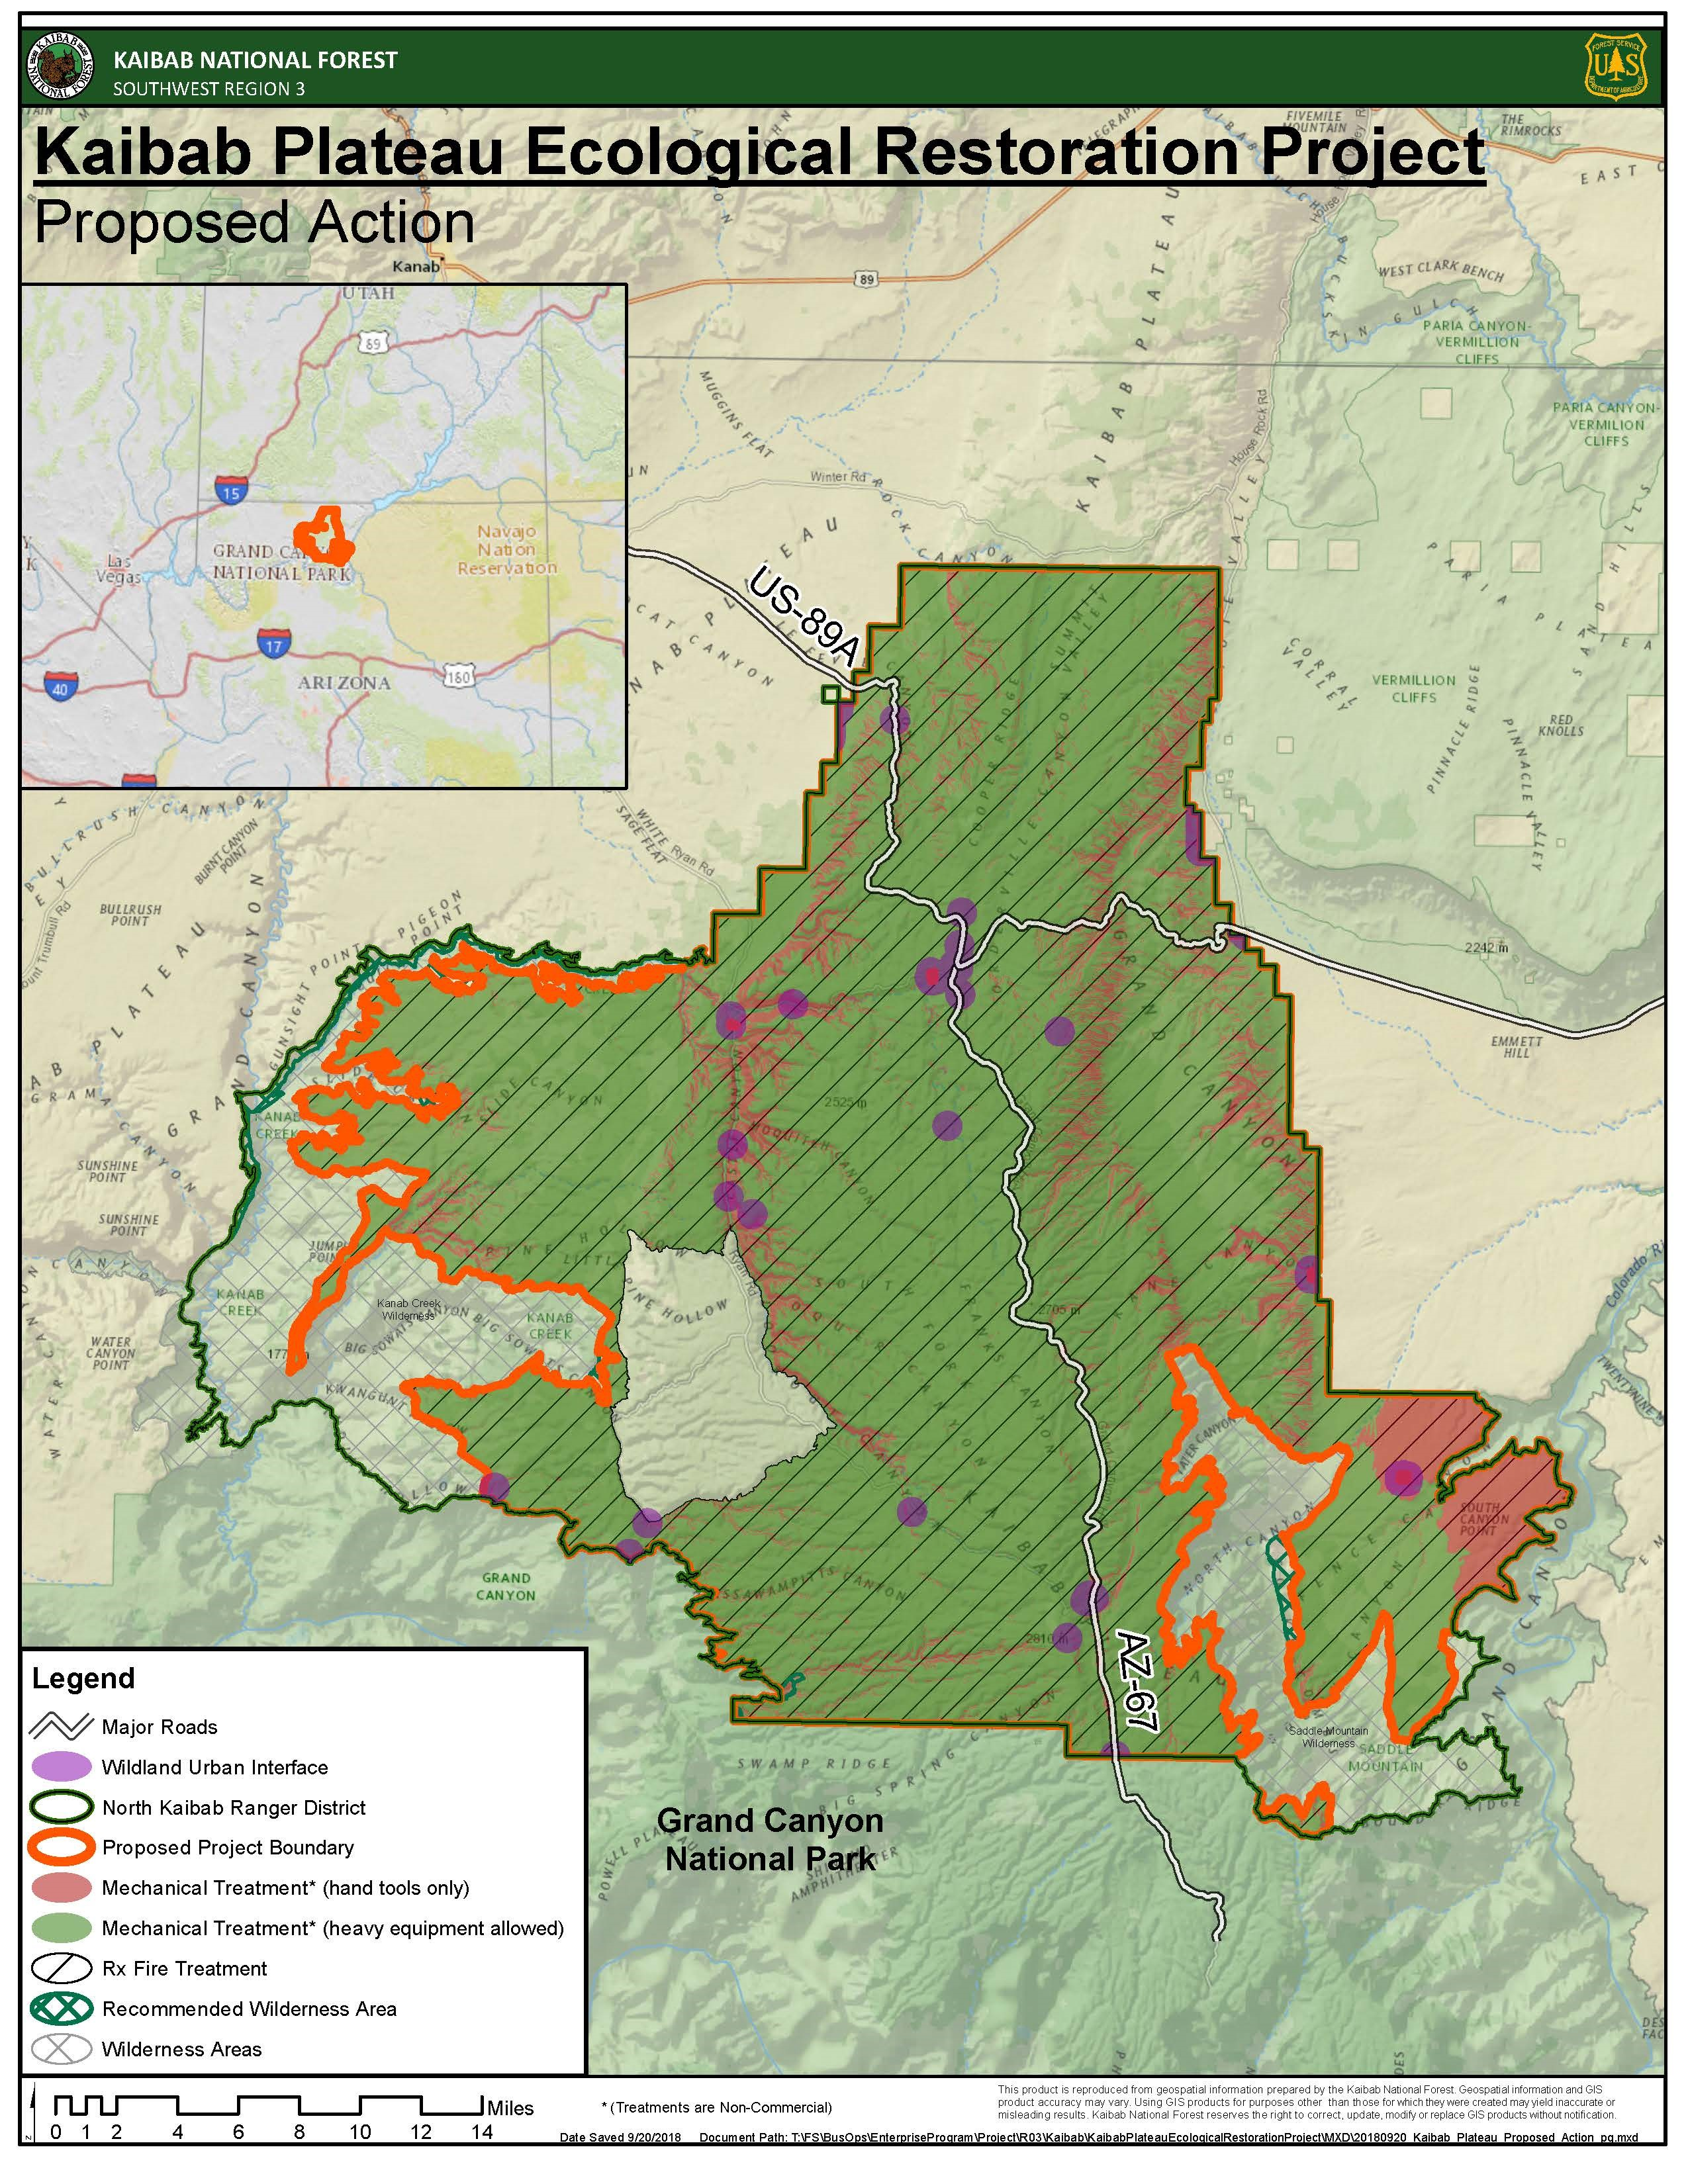 Kaibab Plateau Ecological Restoration Project Map